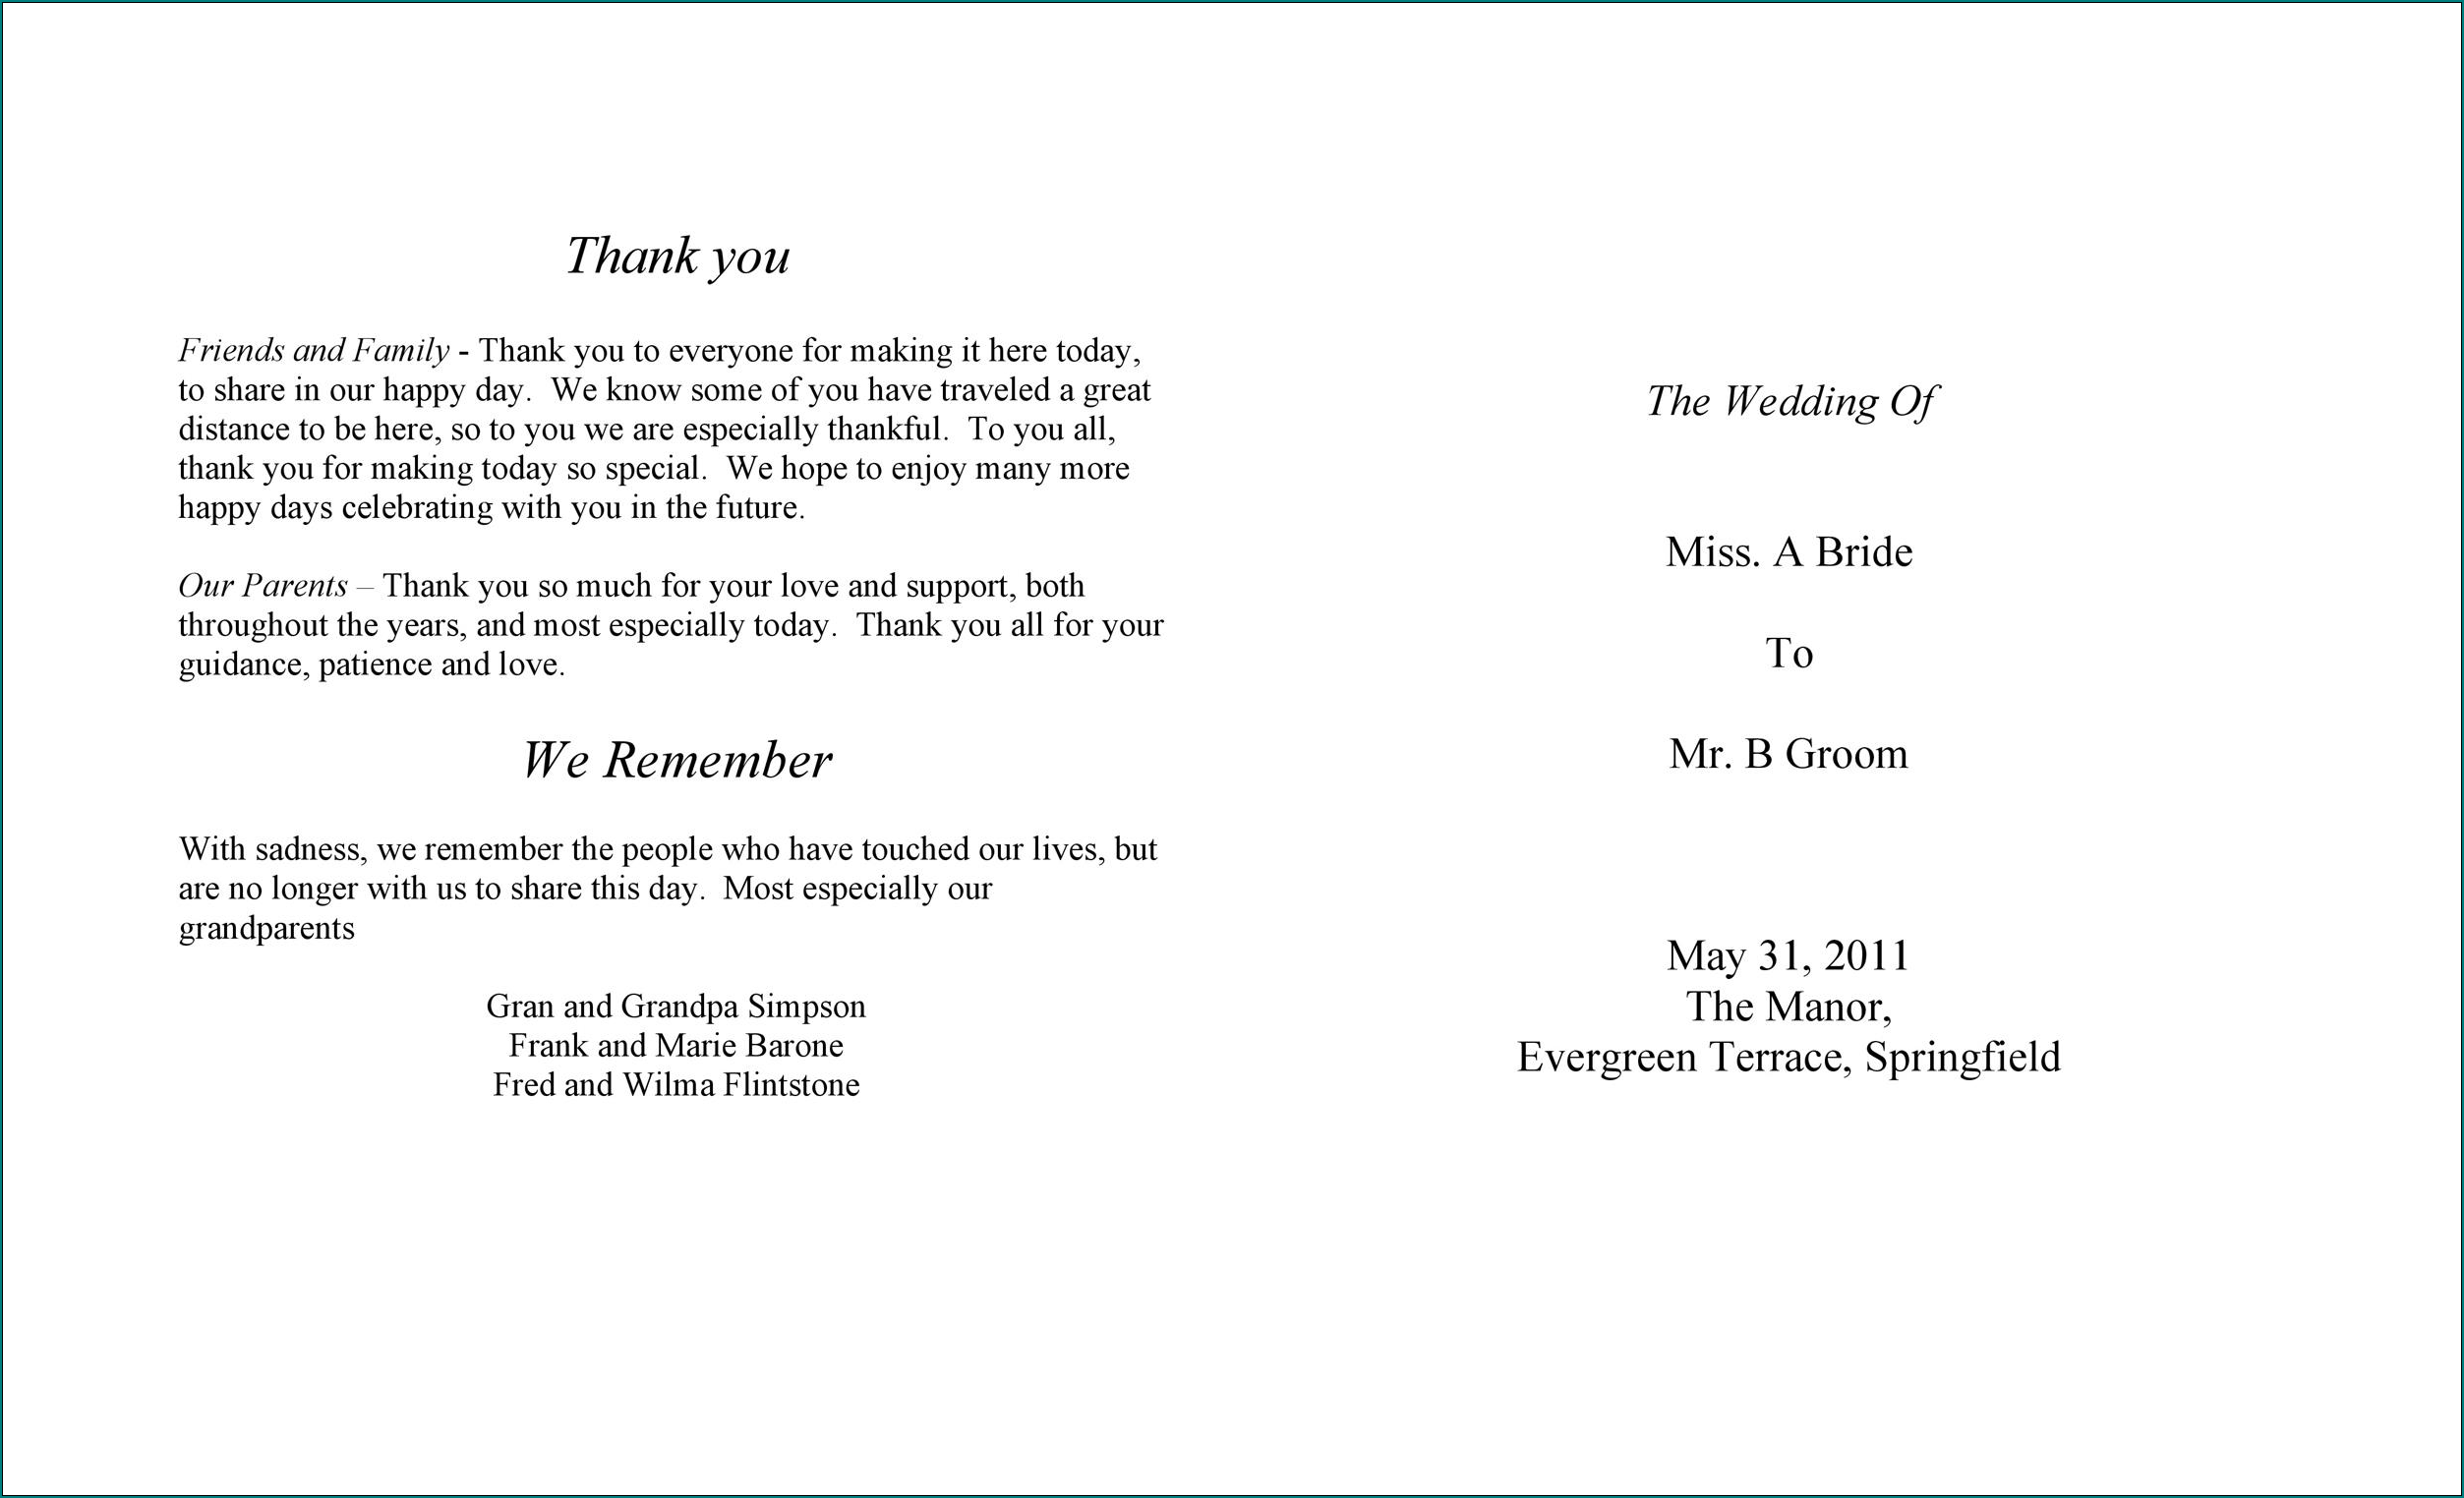 Sample of Wedding Reception Program Template